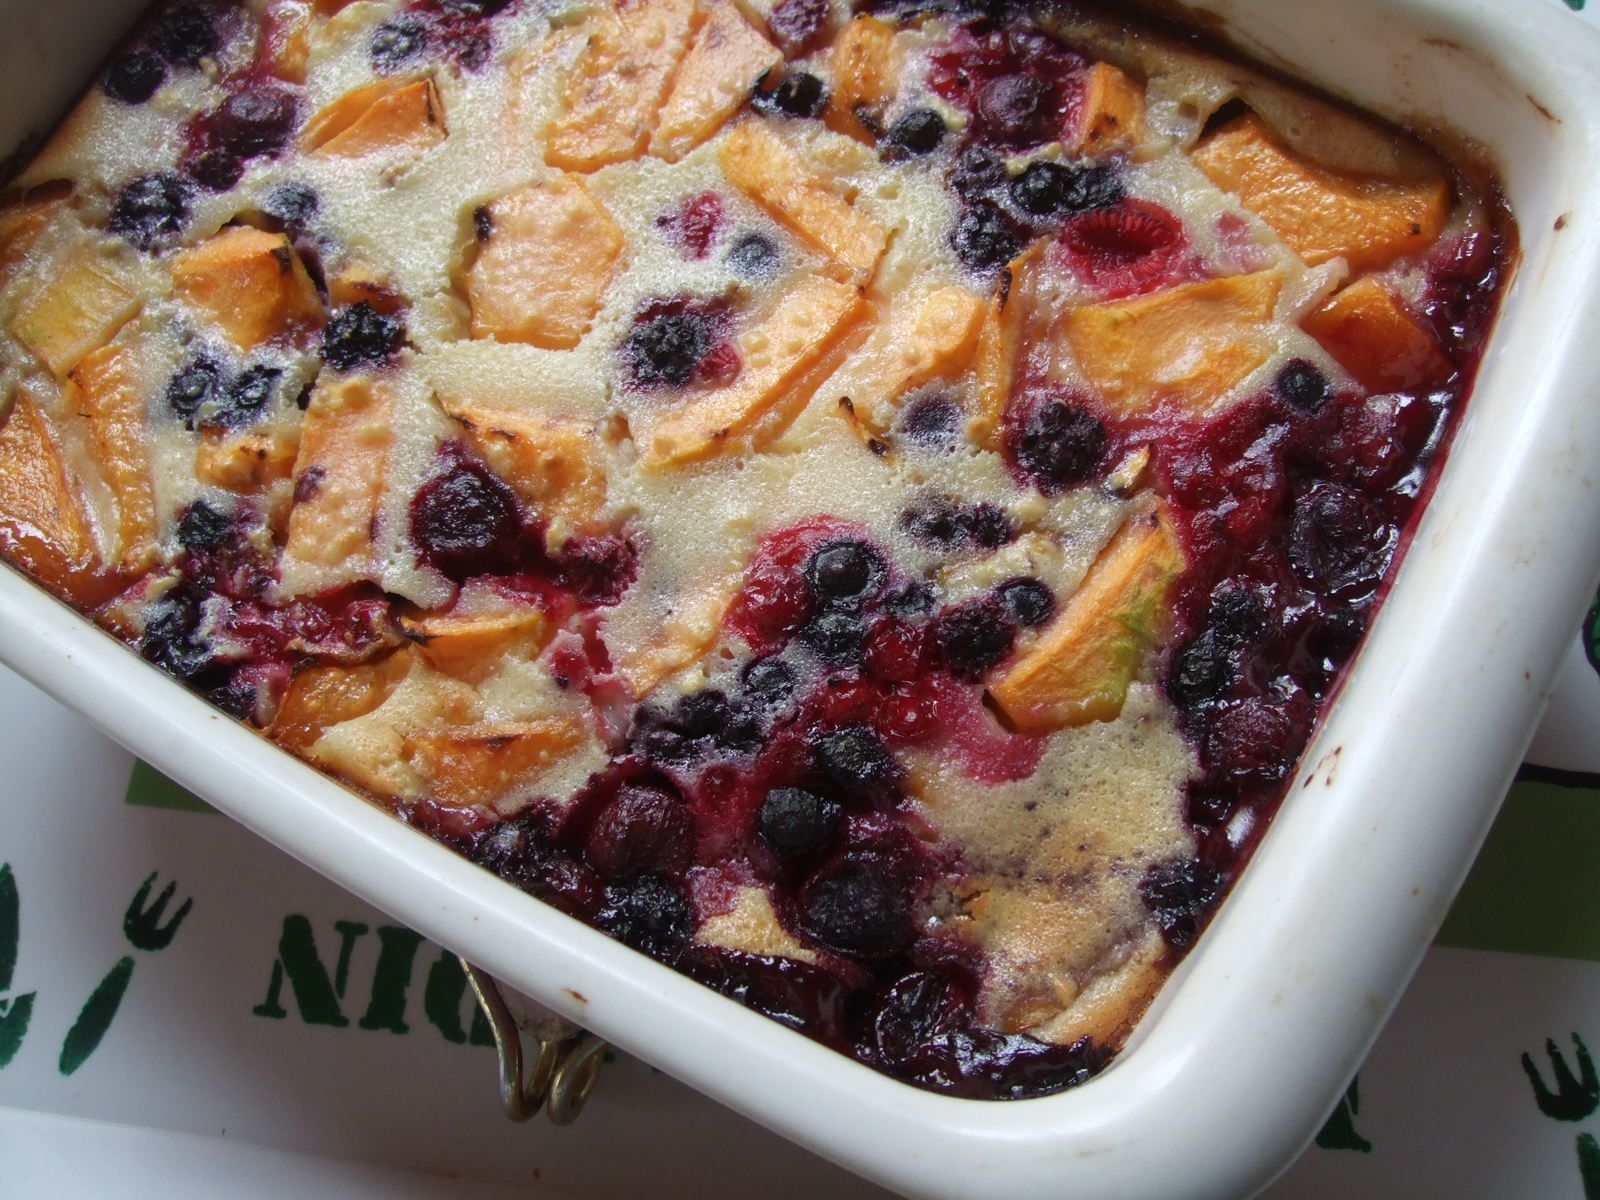 Clafoutis au melon et fruits rouges